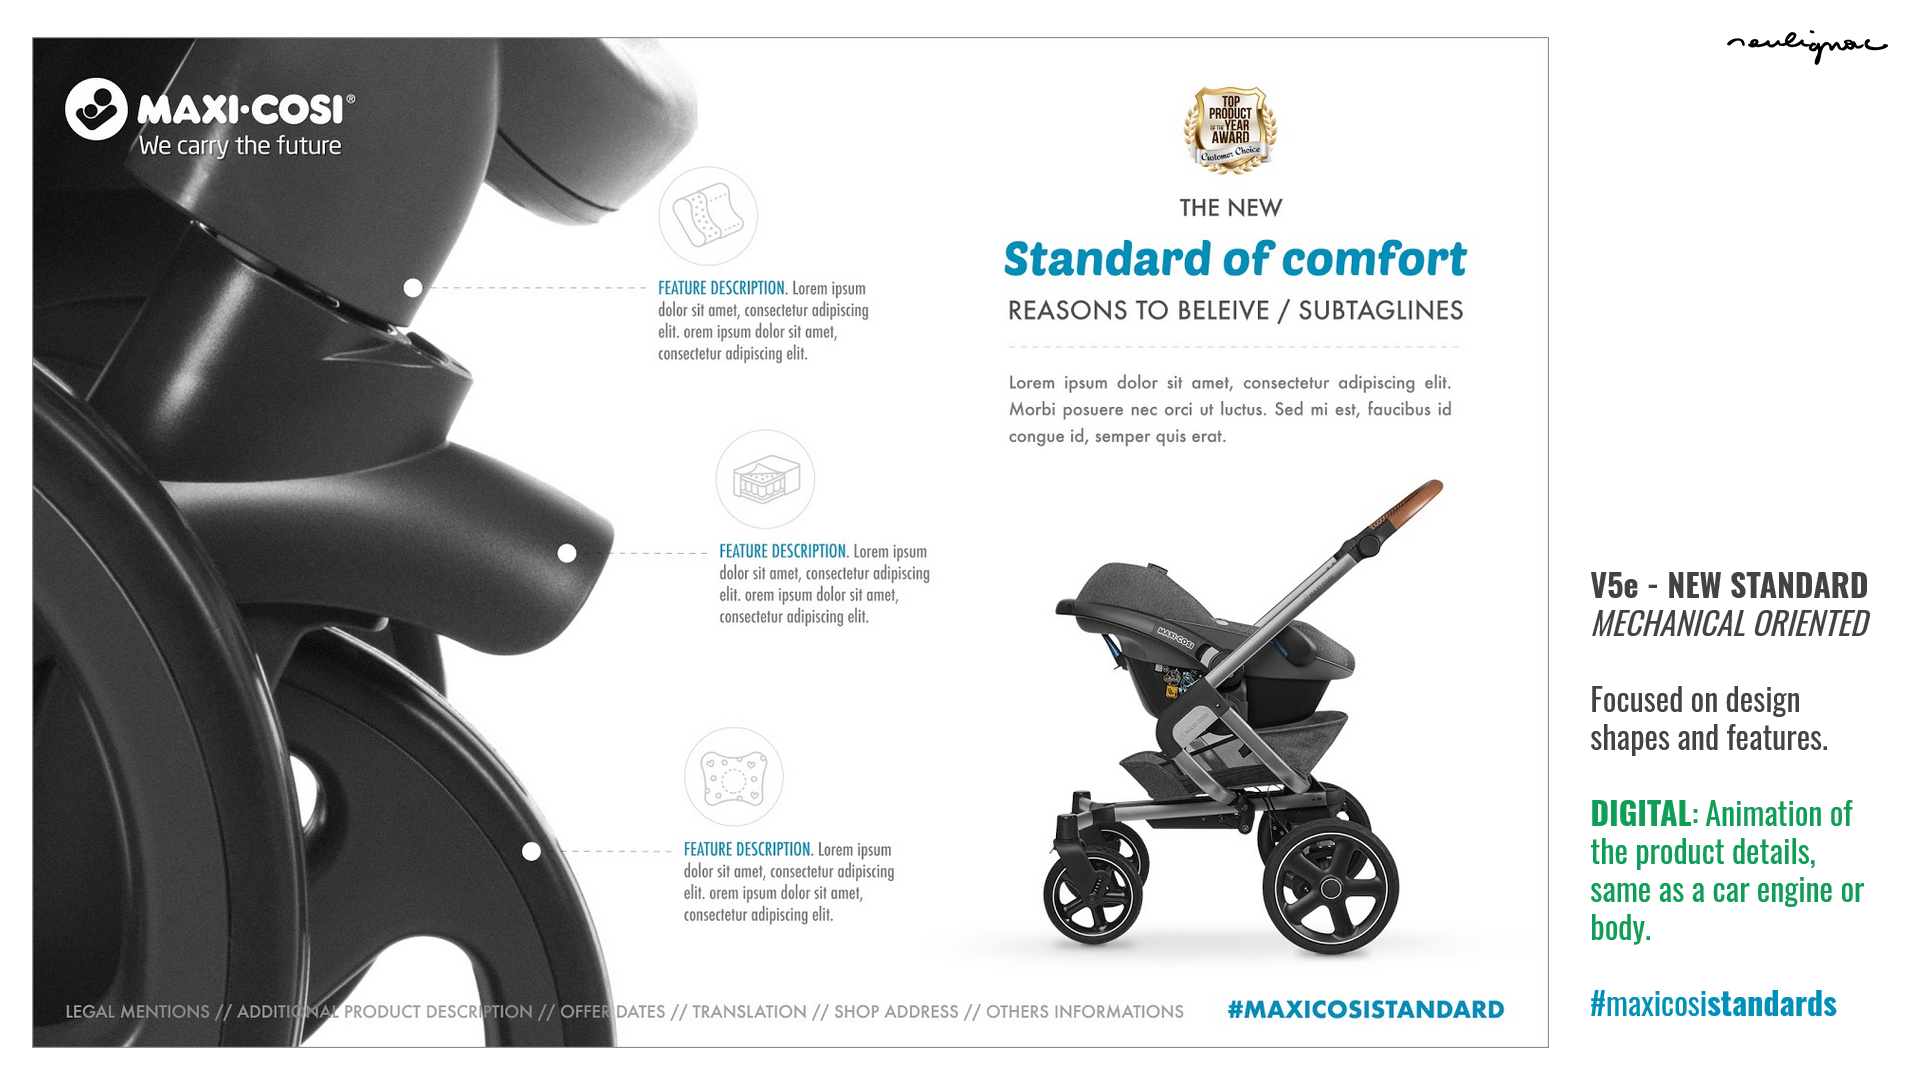 Maxi-Cosi China - Dorel Juvenile - Lila stroller key visual - Researches by François Soulignac, Digital Creative & Art Direction - MADJOR Labbrand Shanghai